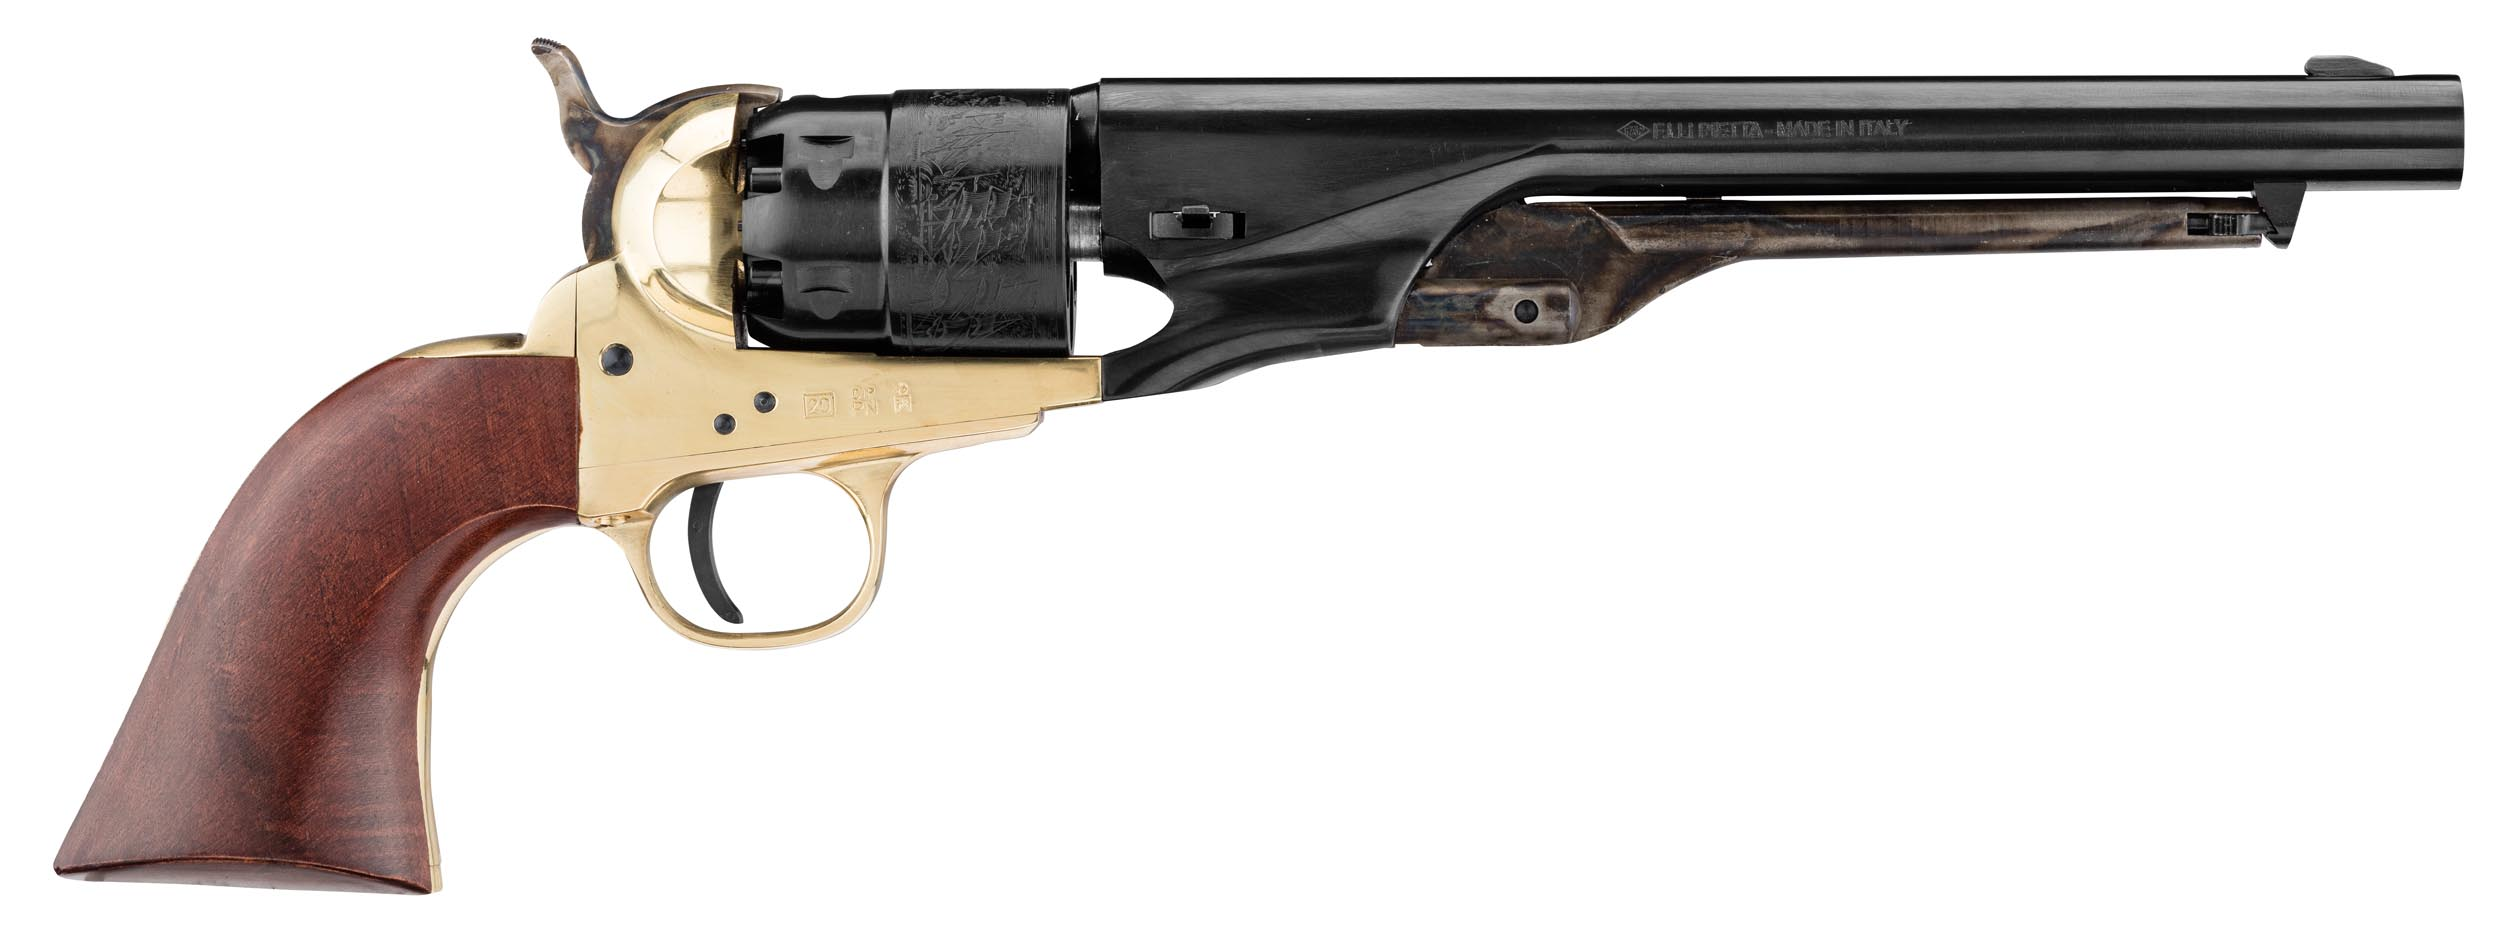 RE464-2 Colt army 1860 Pietta Army laiton - RE464